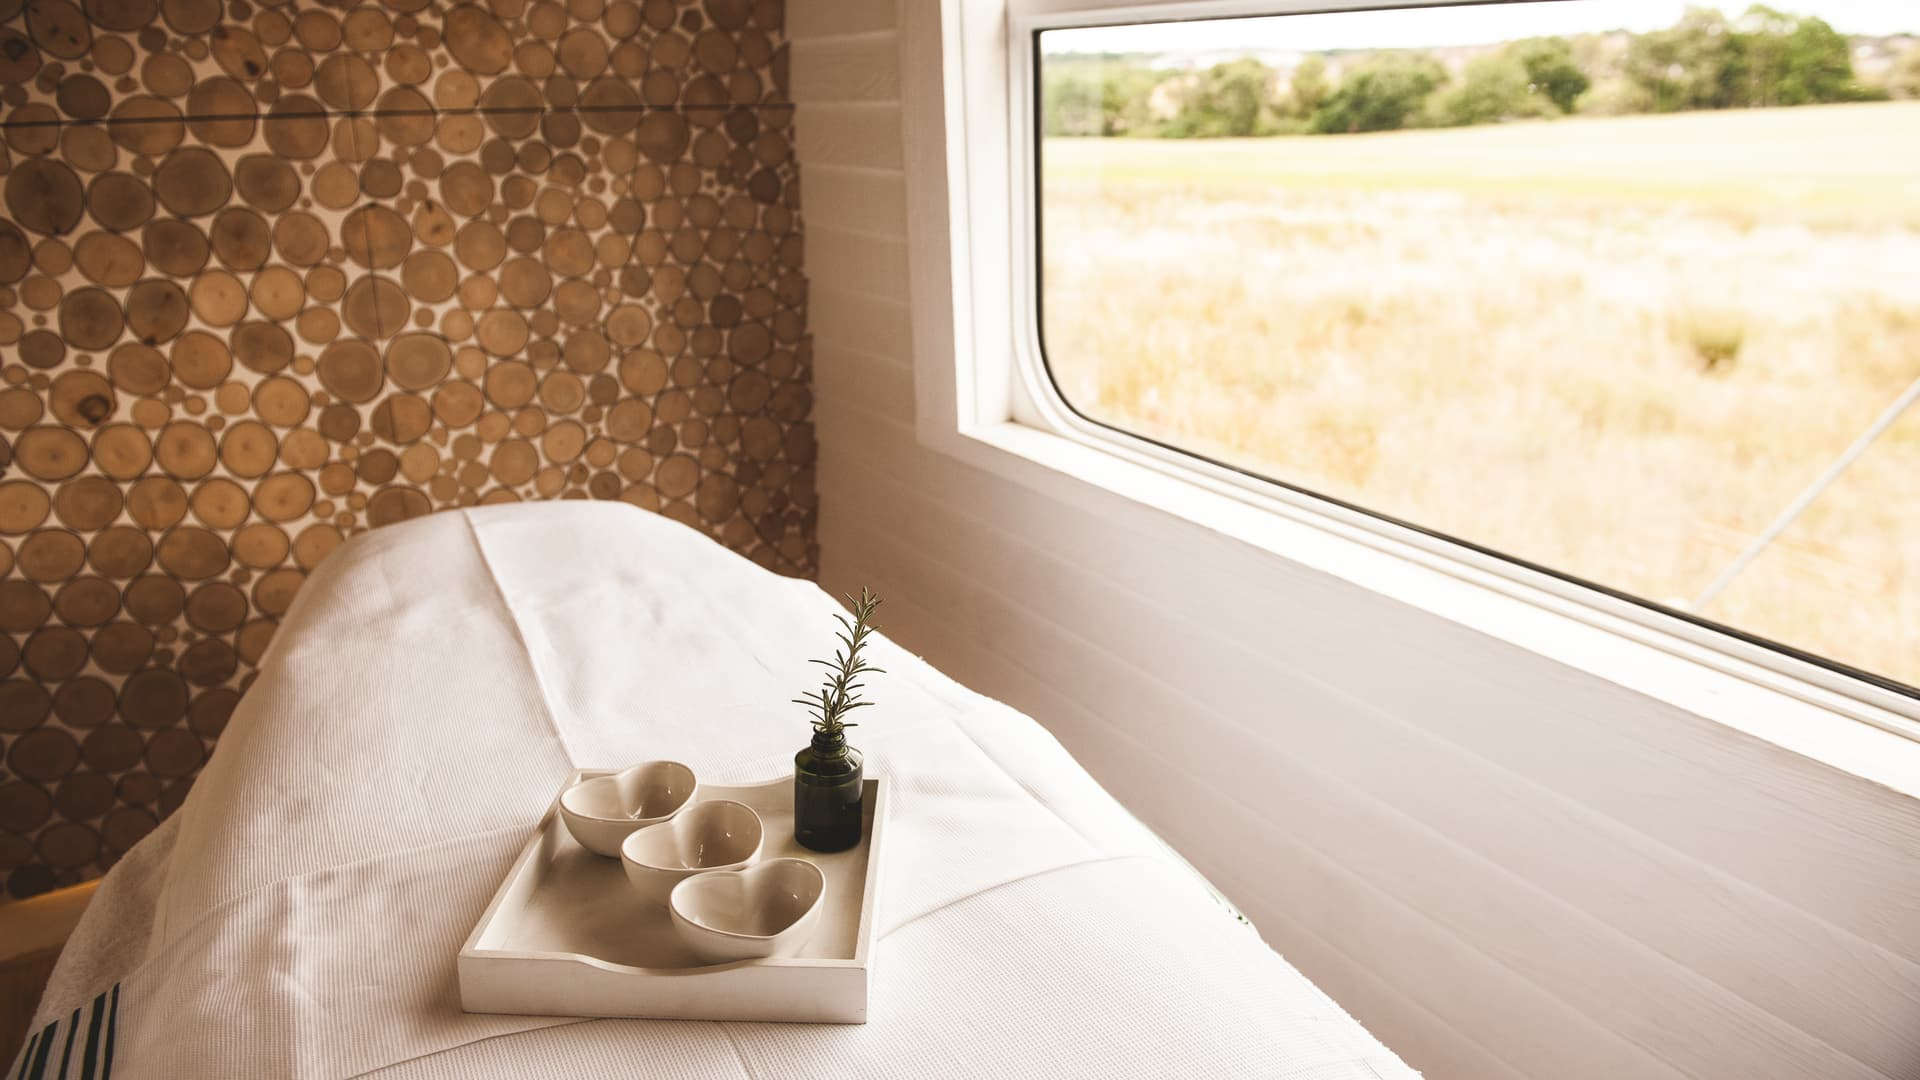 One of two treatments rooms in the train's Bamford Haybarn Spa.